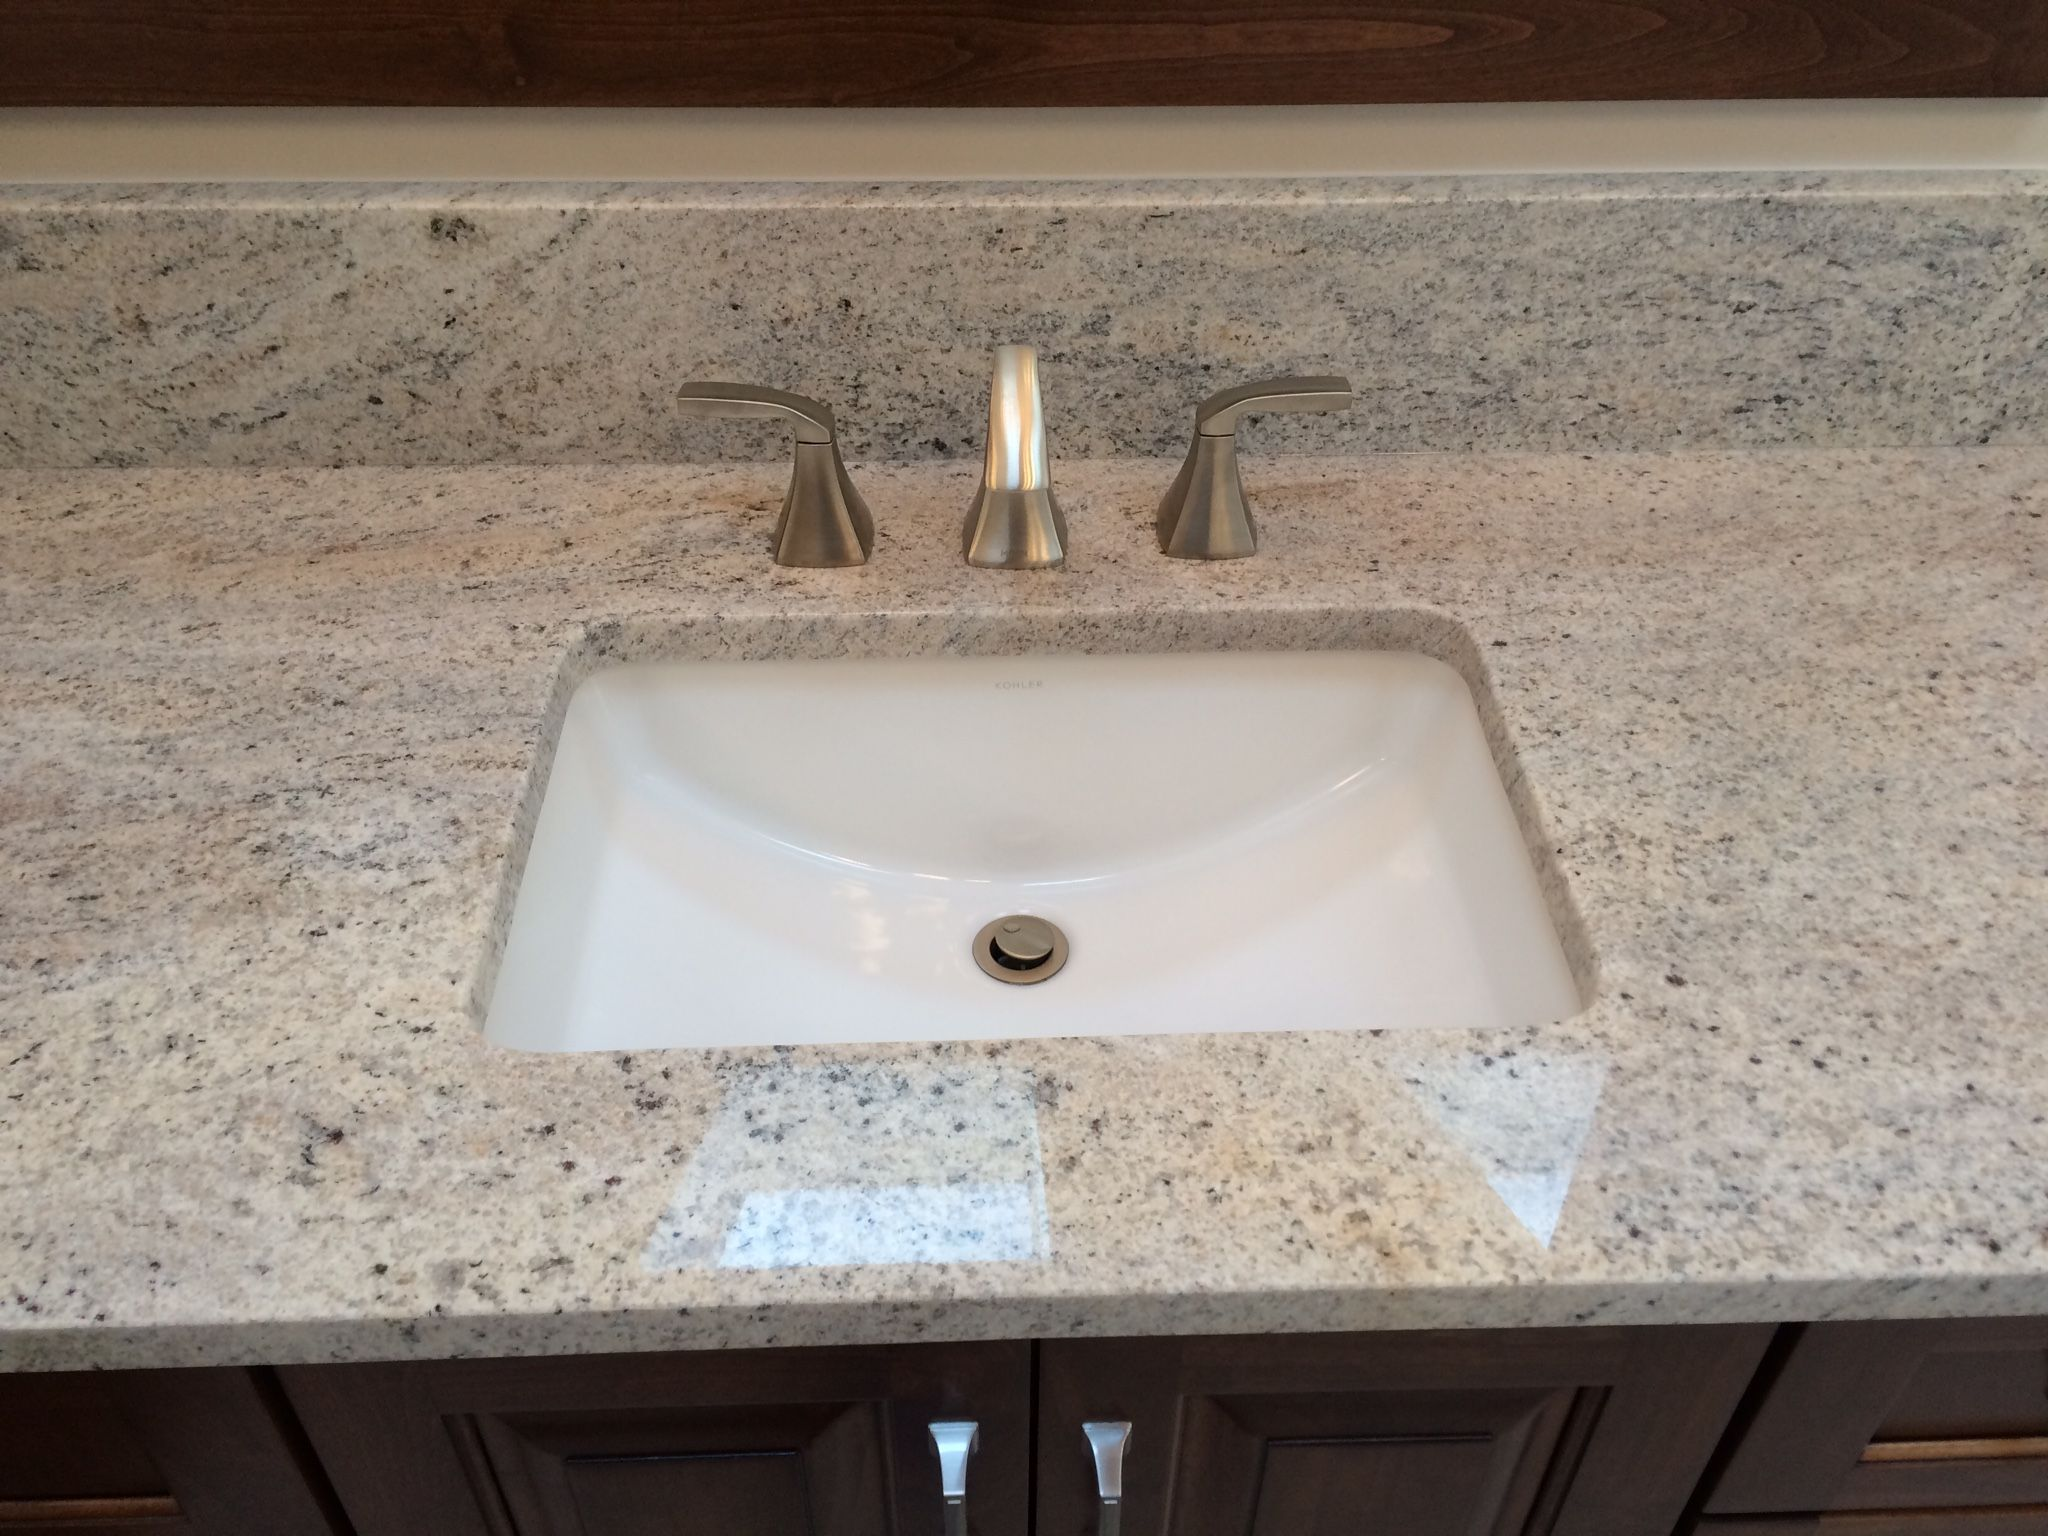 Kohler Ladena Sink with Moen Voss Faucet This Is My Sink Style